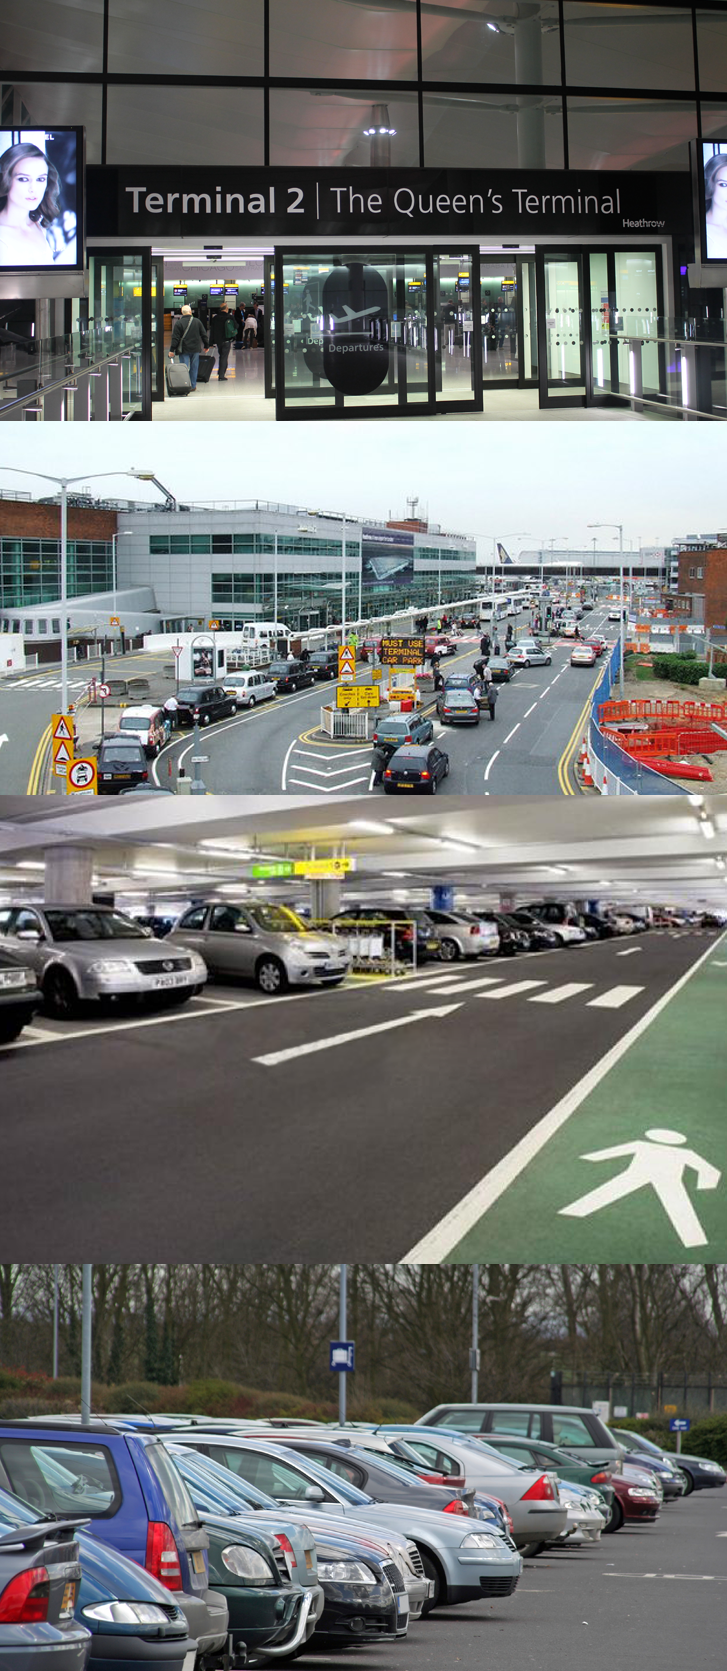 Parking Options At Heathrow Terminal 2 An Overview Of Car Parking